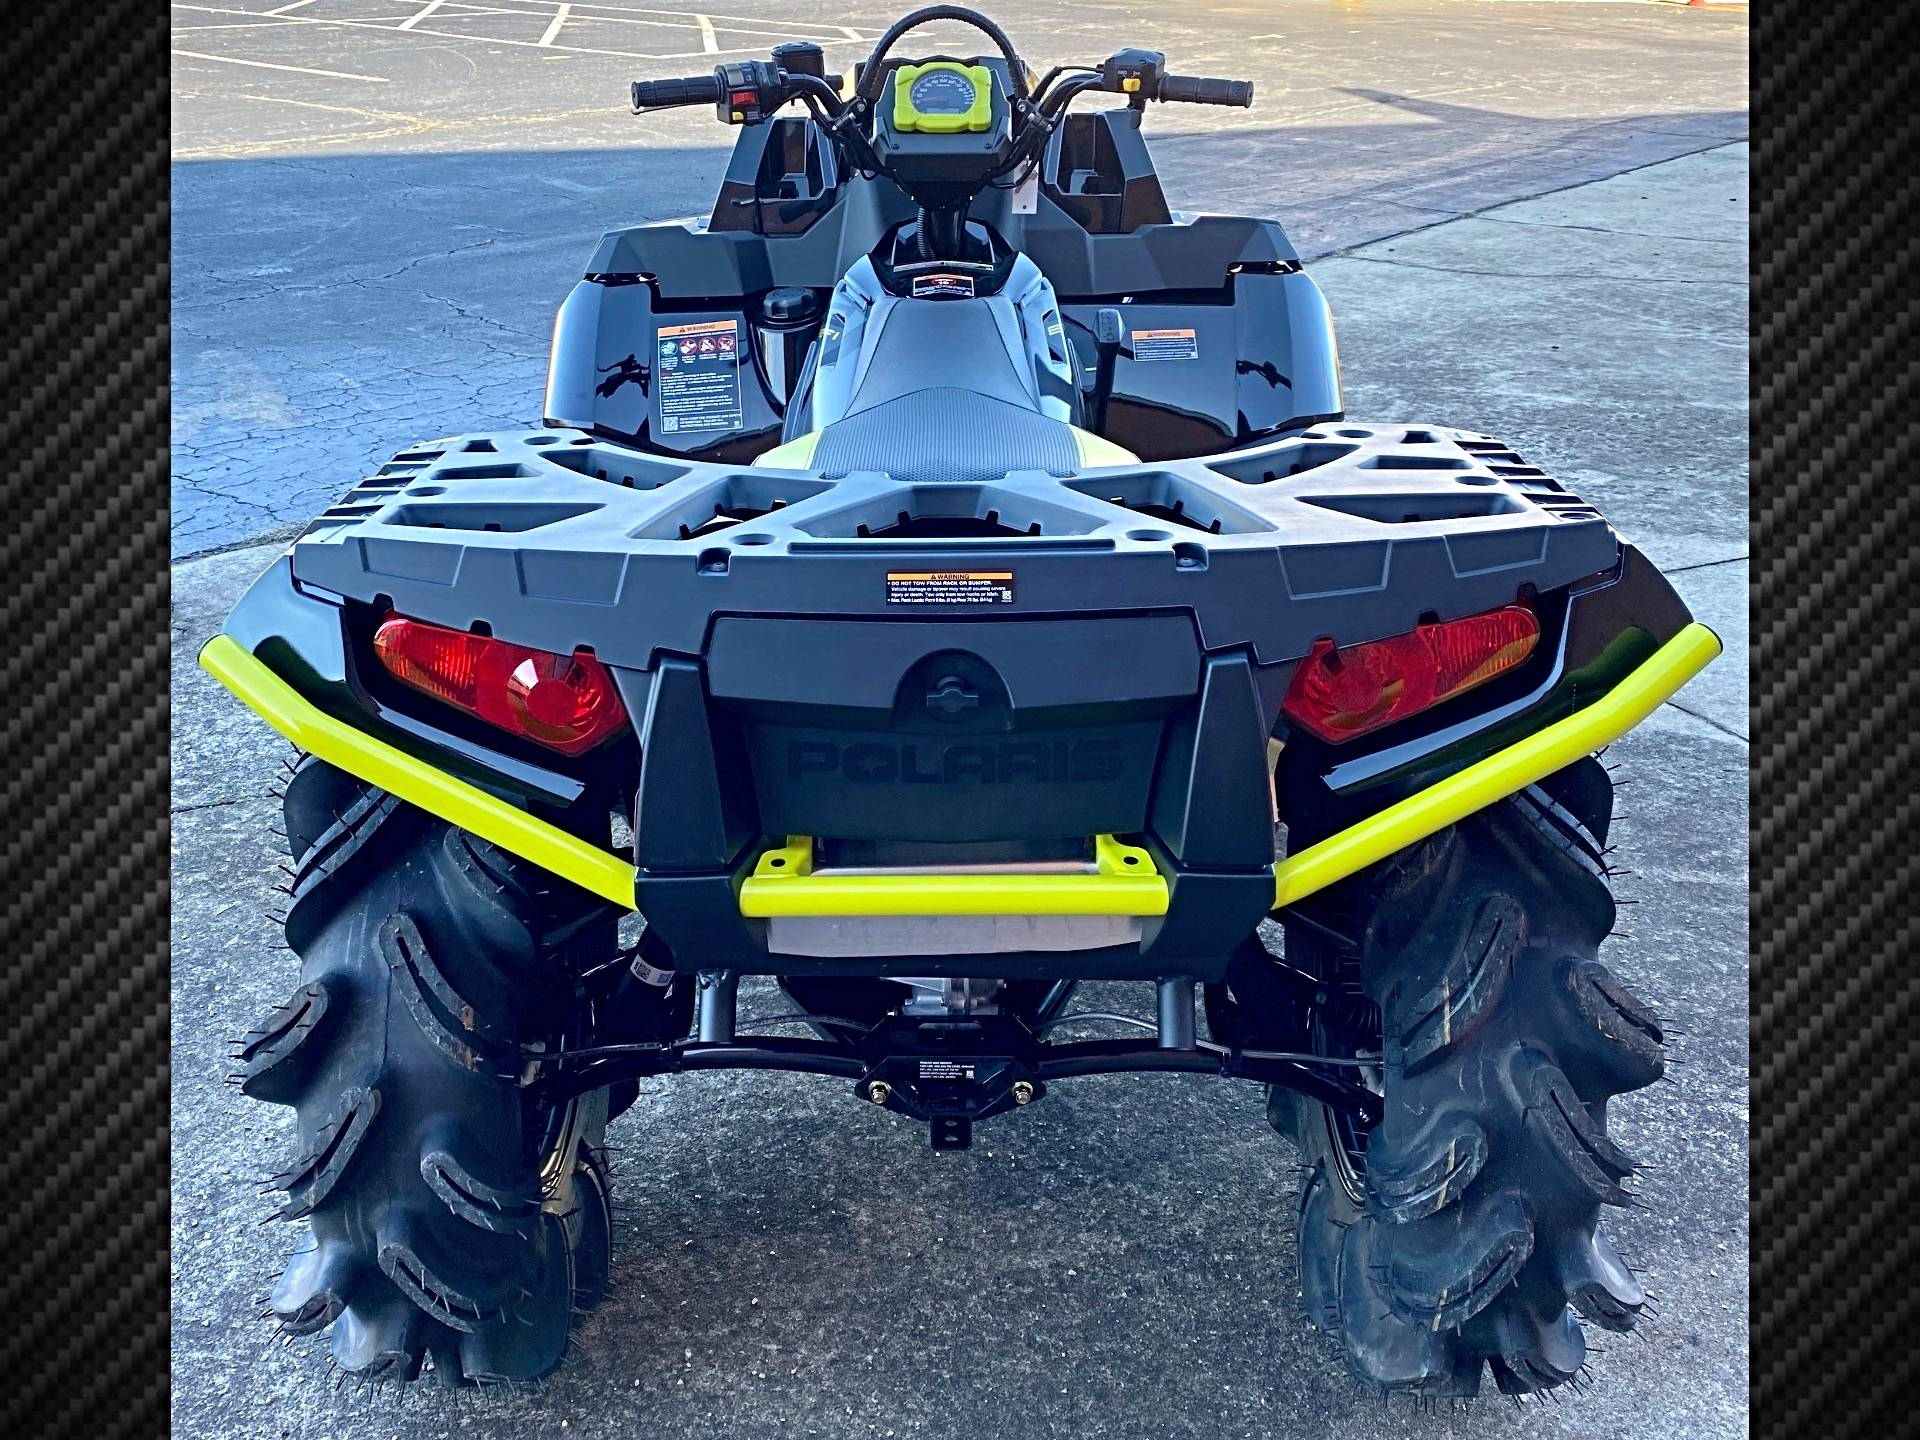 2020 Polaris Sportsman XP 1000 High Lifter Edition in Statesville, North Carolina - Photo 5